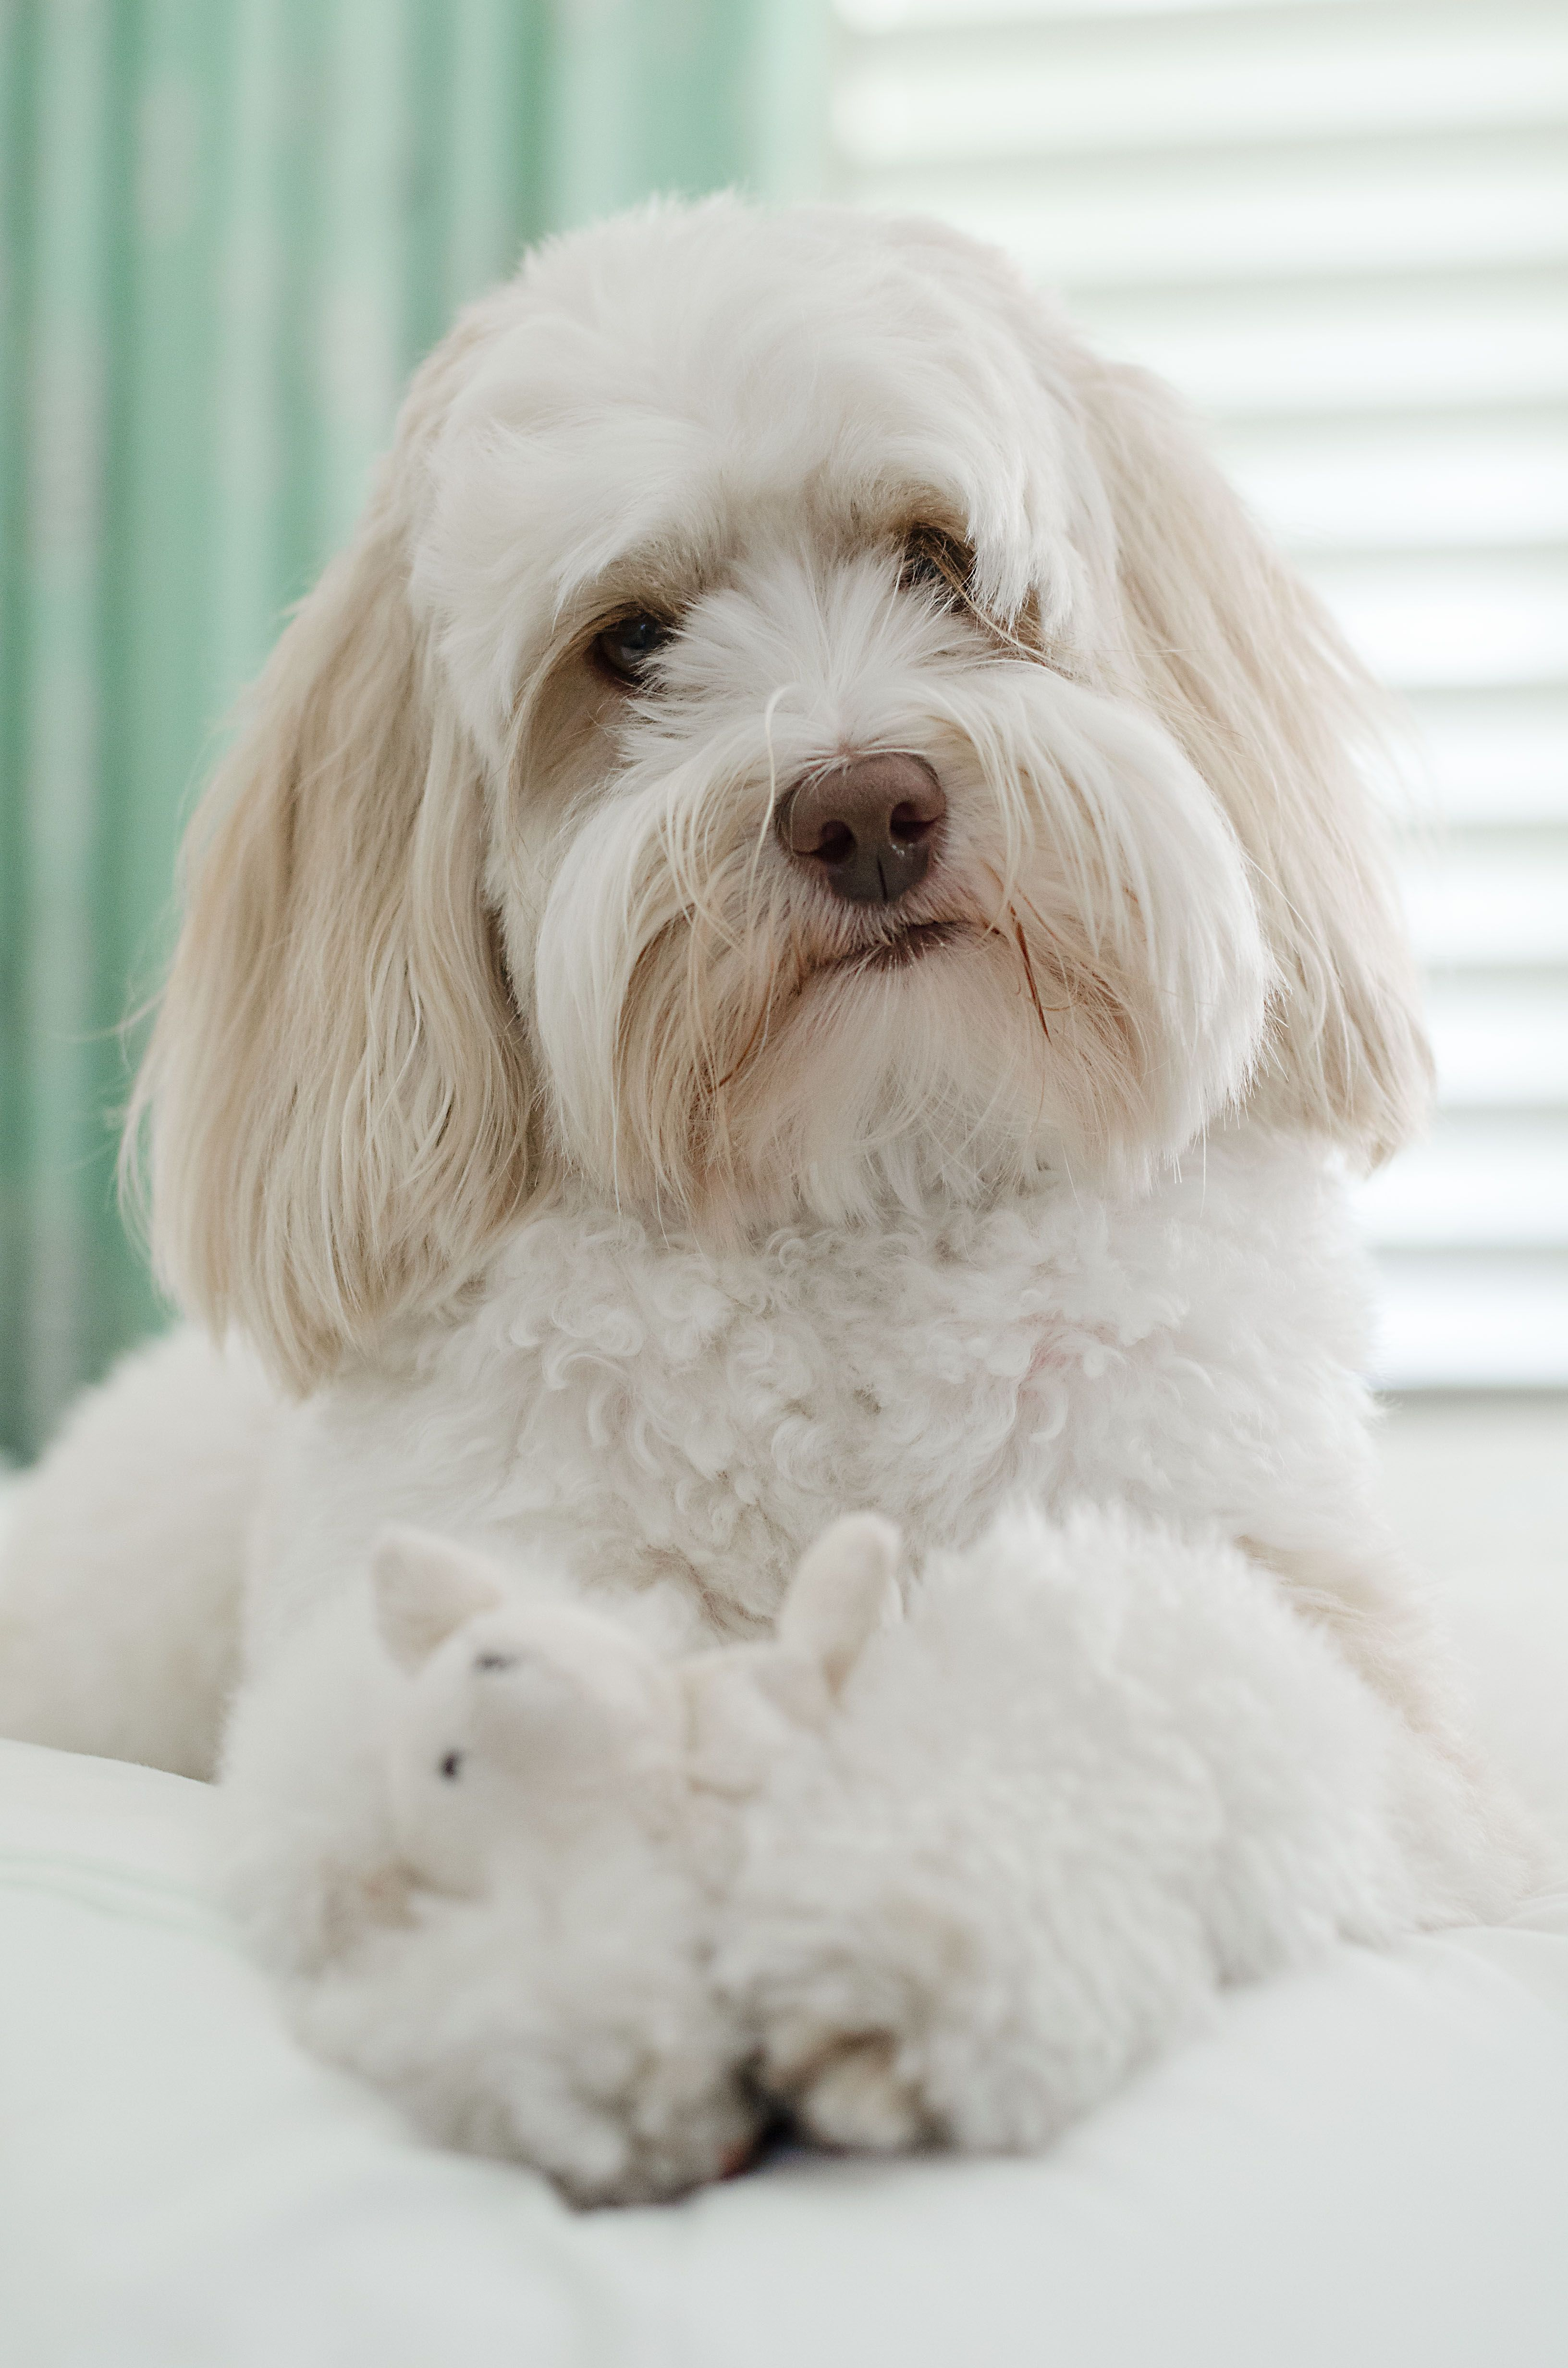 Mini Australian Labradoodle dog on bed with toy. Pet